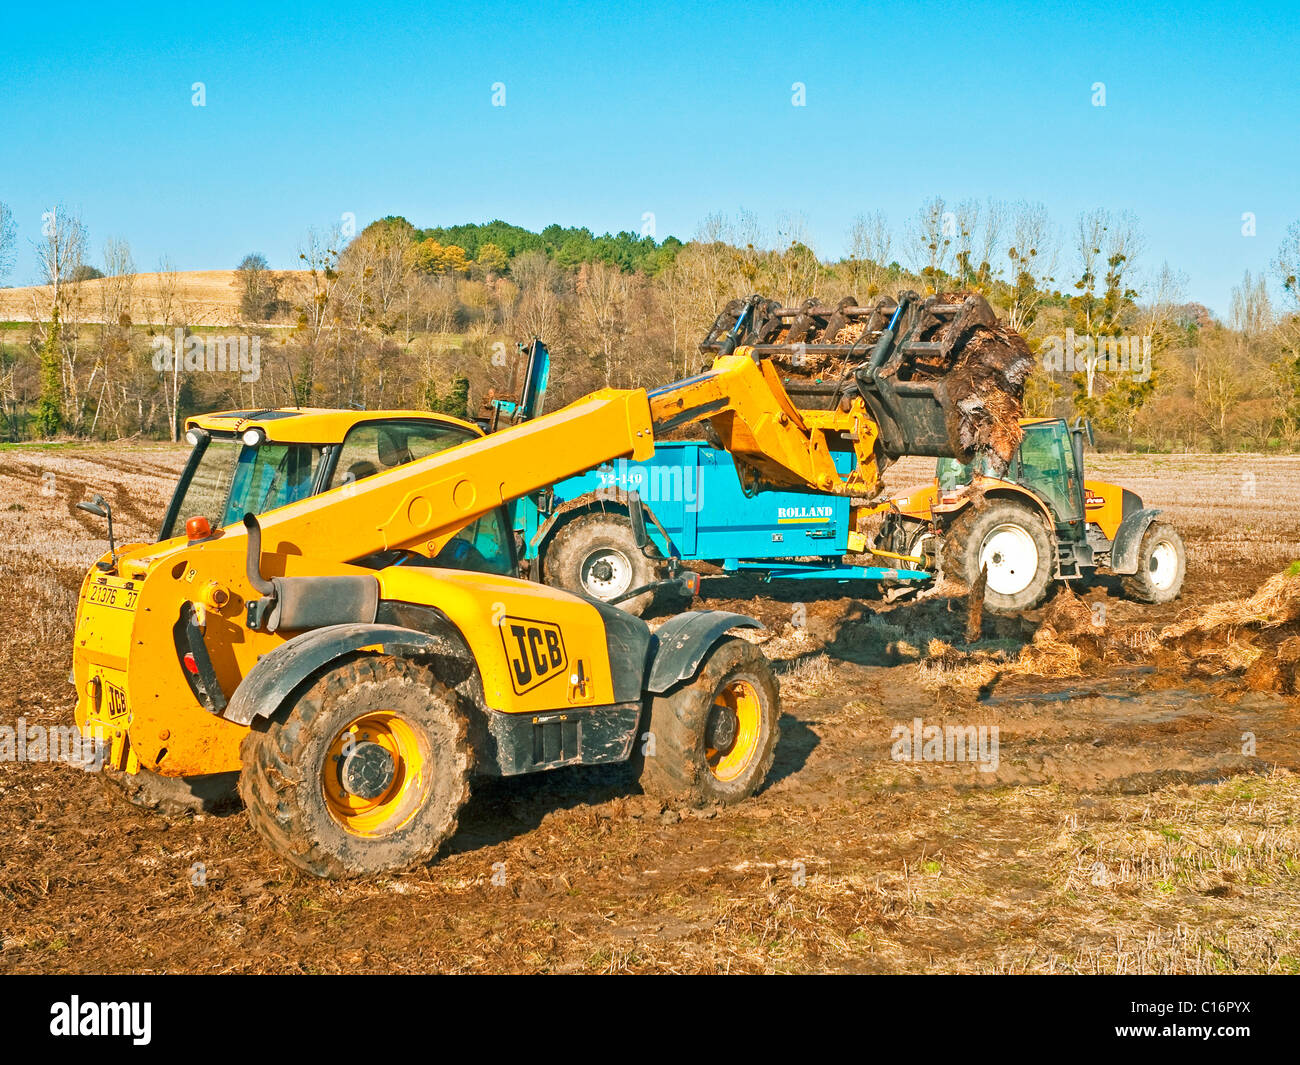 JCB Telescopic Handler tractor and muck spreader - France. - Stock Image